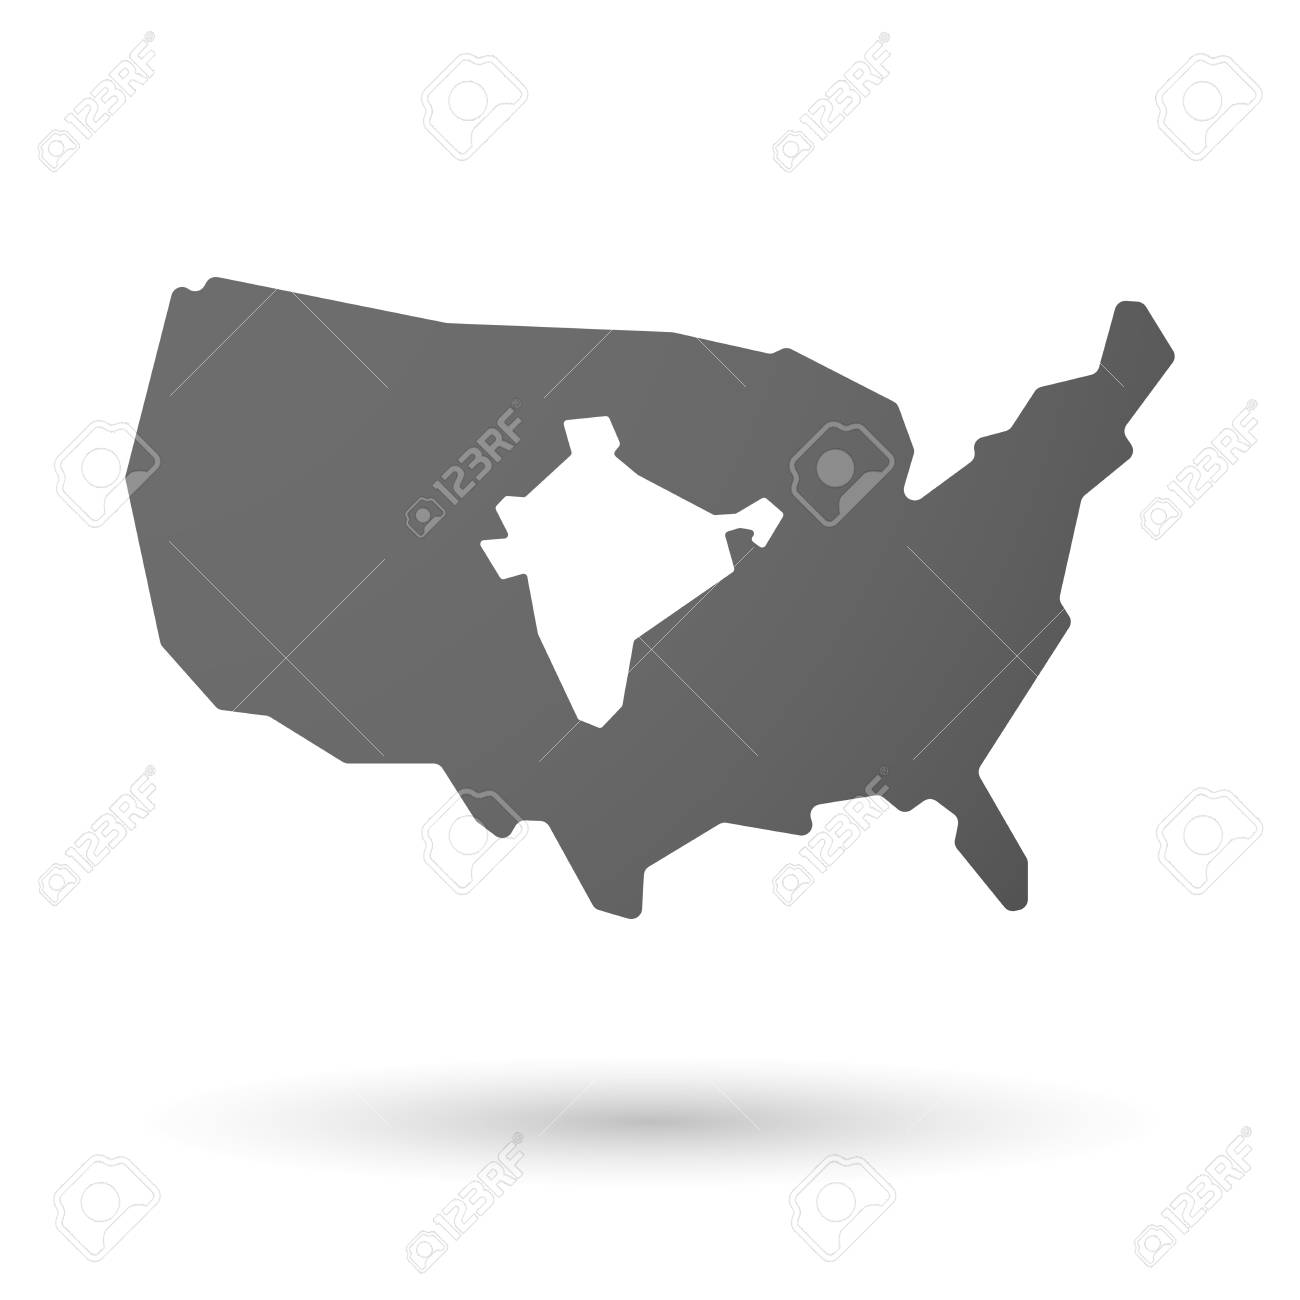 illustration of an isolated USA map icon with a map of India on russia and usa map, india and money, solomon islands and usa map, somalia and usa map, japan and usa map, england and usa map, ireland and usa map, germany and usa map, colombia and usa map, iceland and usa map, switzerland and usa map, mexico and usa map, cuba and usa map, belize and usa map, canada and usa map, egypt and usa map, spain and usa map, denmark and usa map, india and usa flag, latin america and usa map,